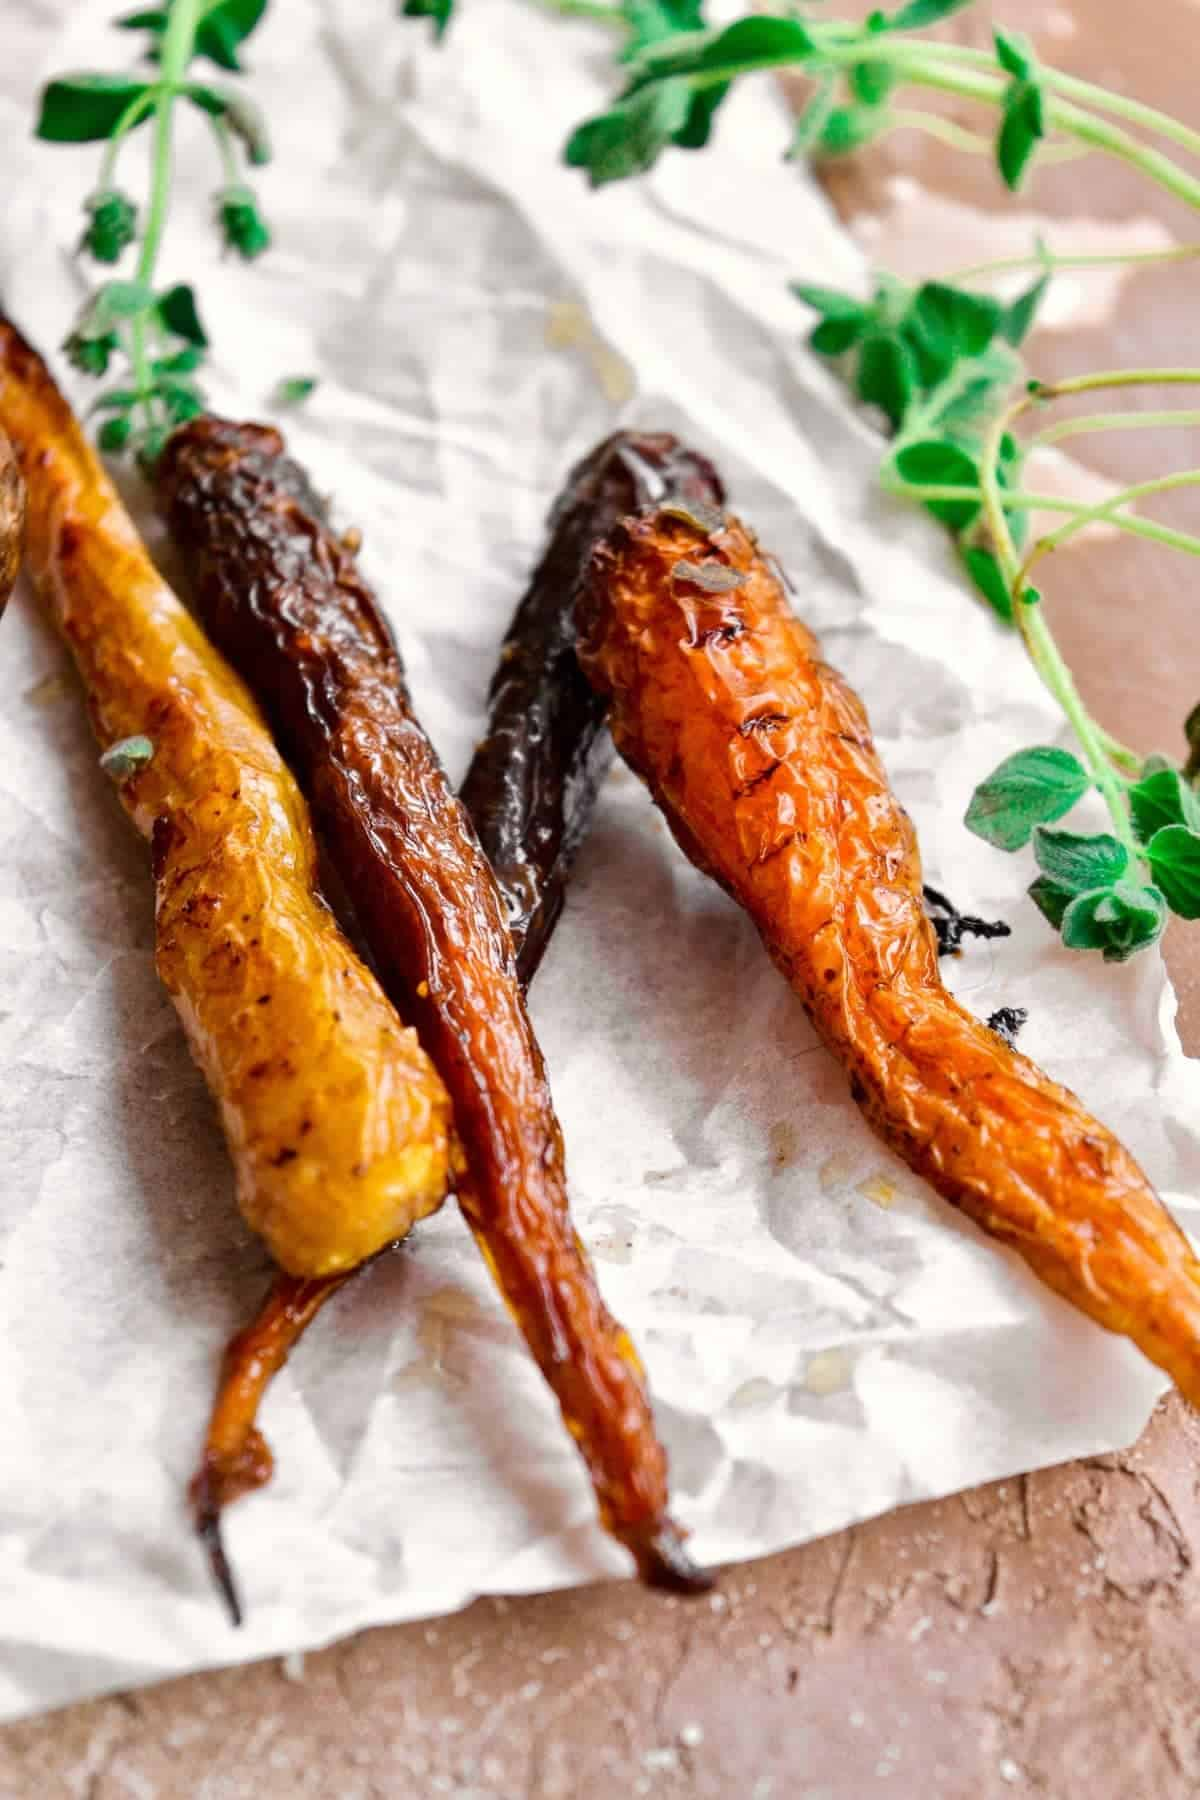 Baked carrots on parchment paper